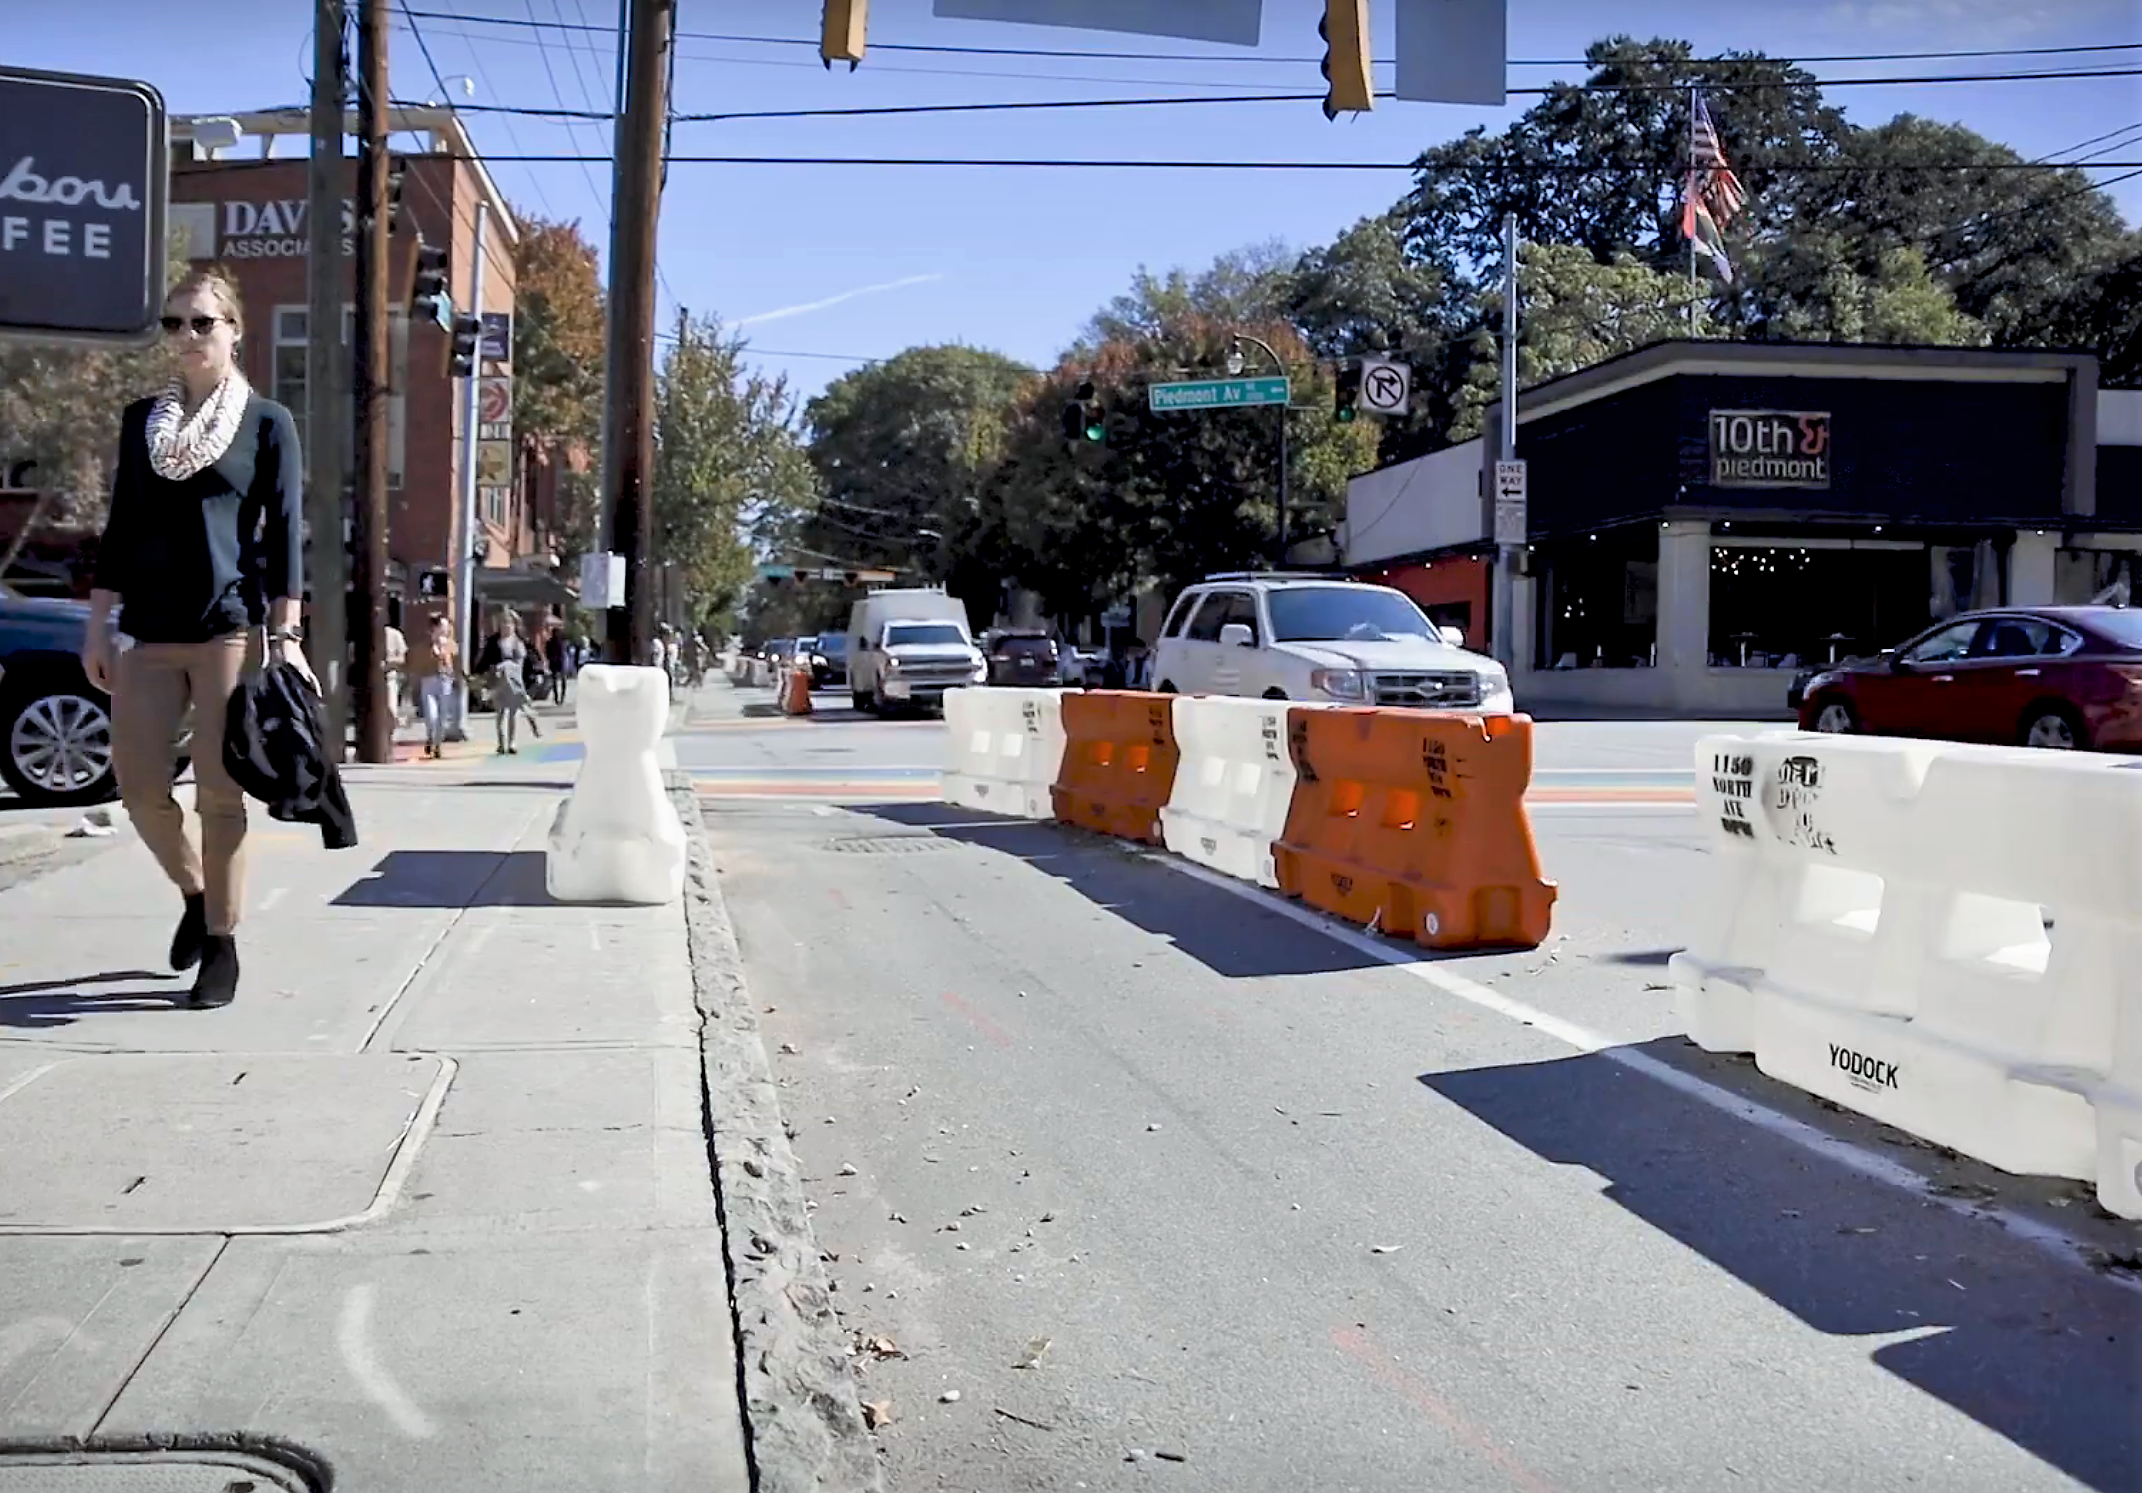 Orange and white plastic barriers cordon off an automobile lane to make a temporary bike path.